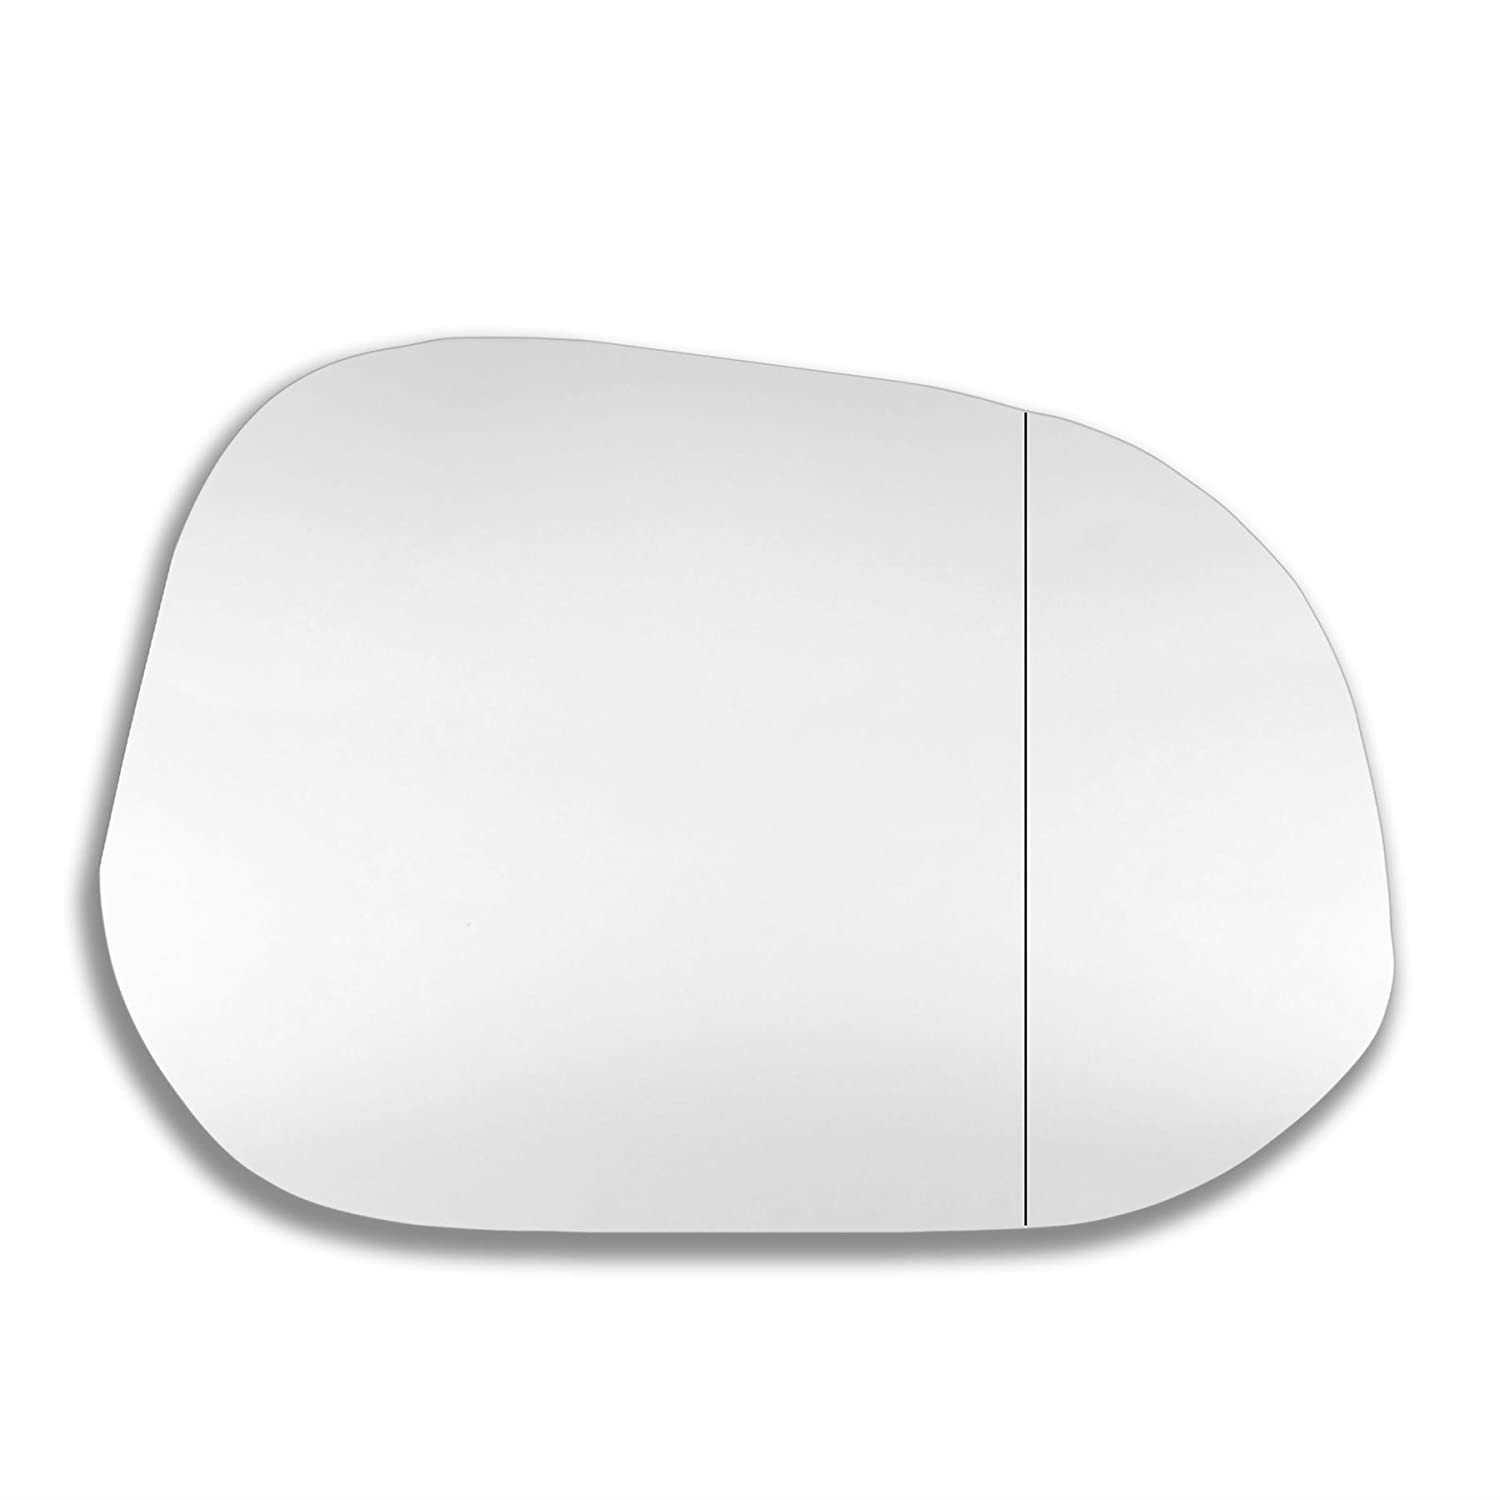 ToGra. Right side wing mirror glass. Real glass,door stick on mirror replacement Driver side quick fix silver #ToGr-95/10-R_wa